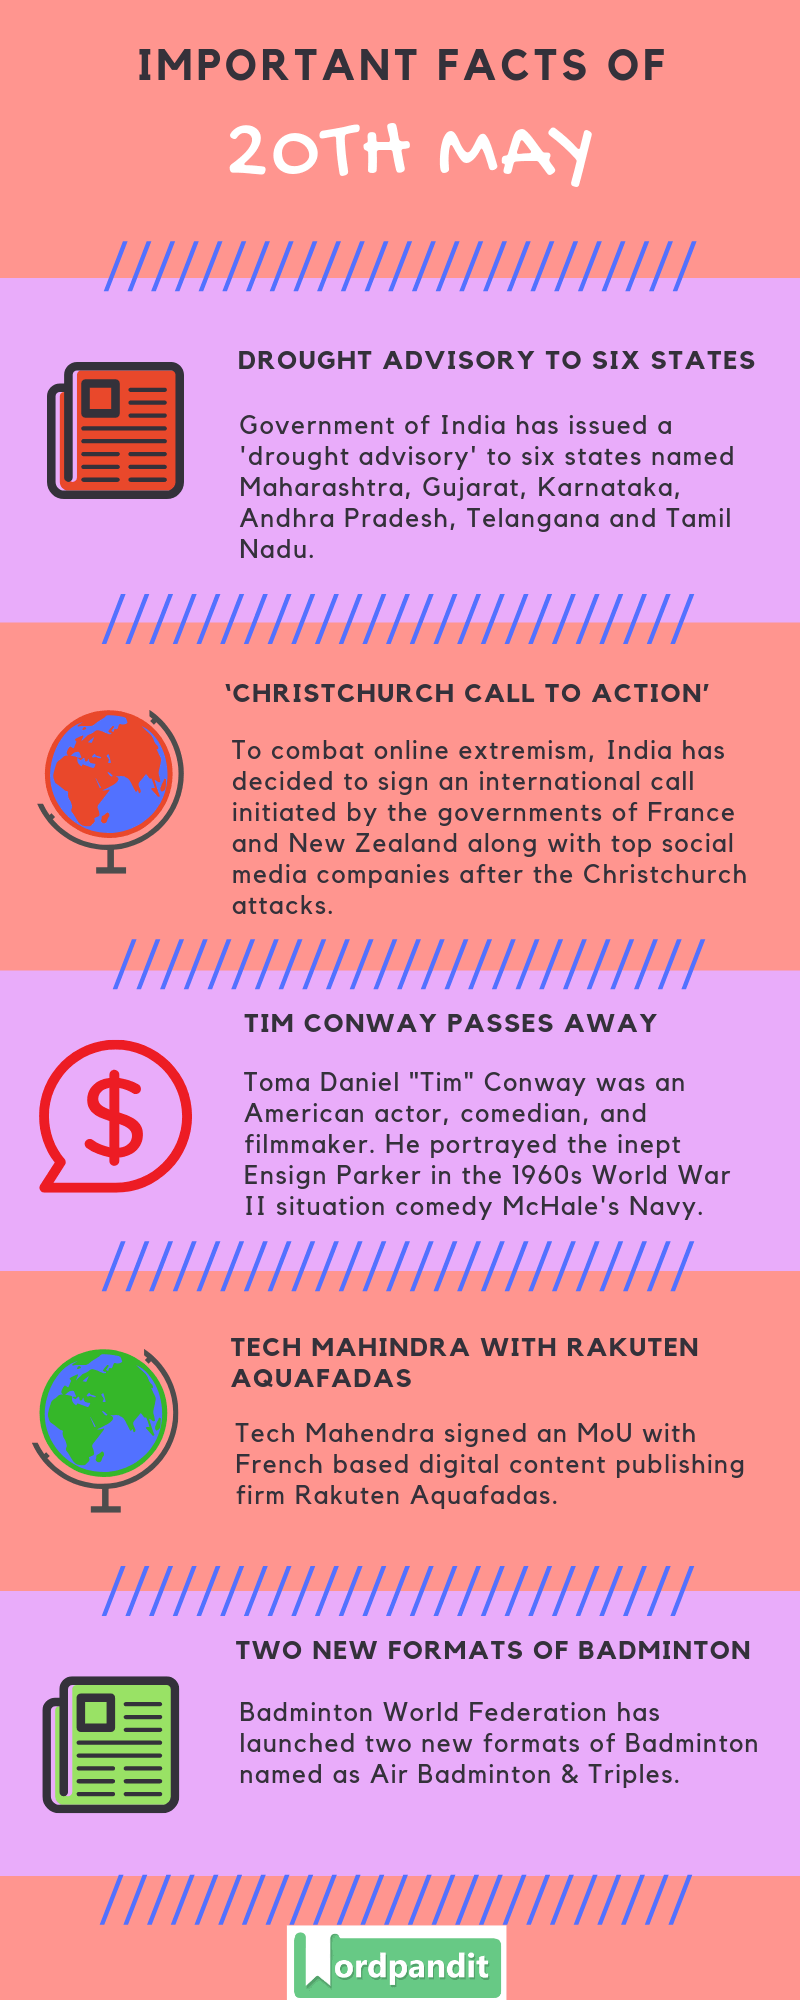 Daily Current Affairs 20 May 2019 Current Affairs Quiz 20 May 2019 Current Affairs Infographic